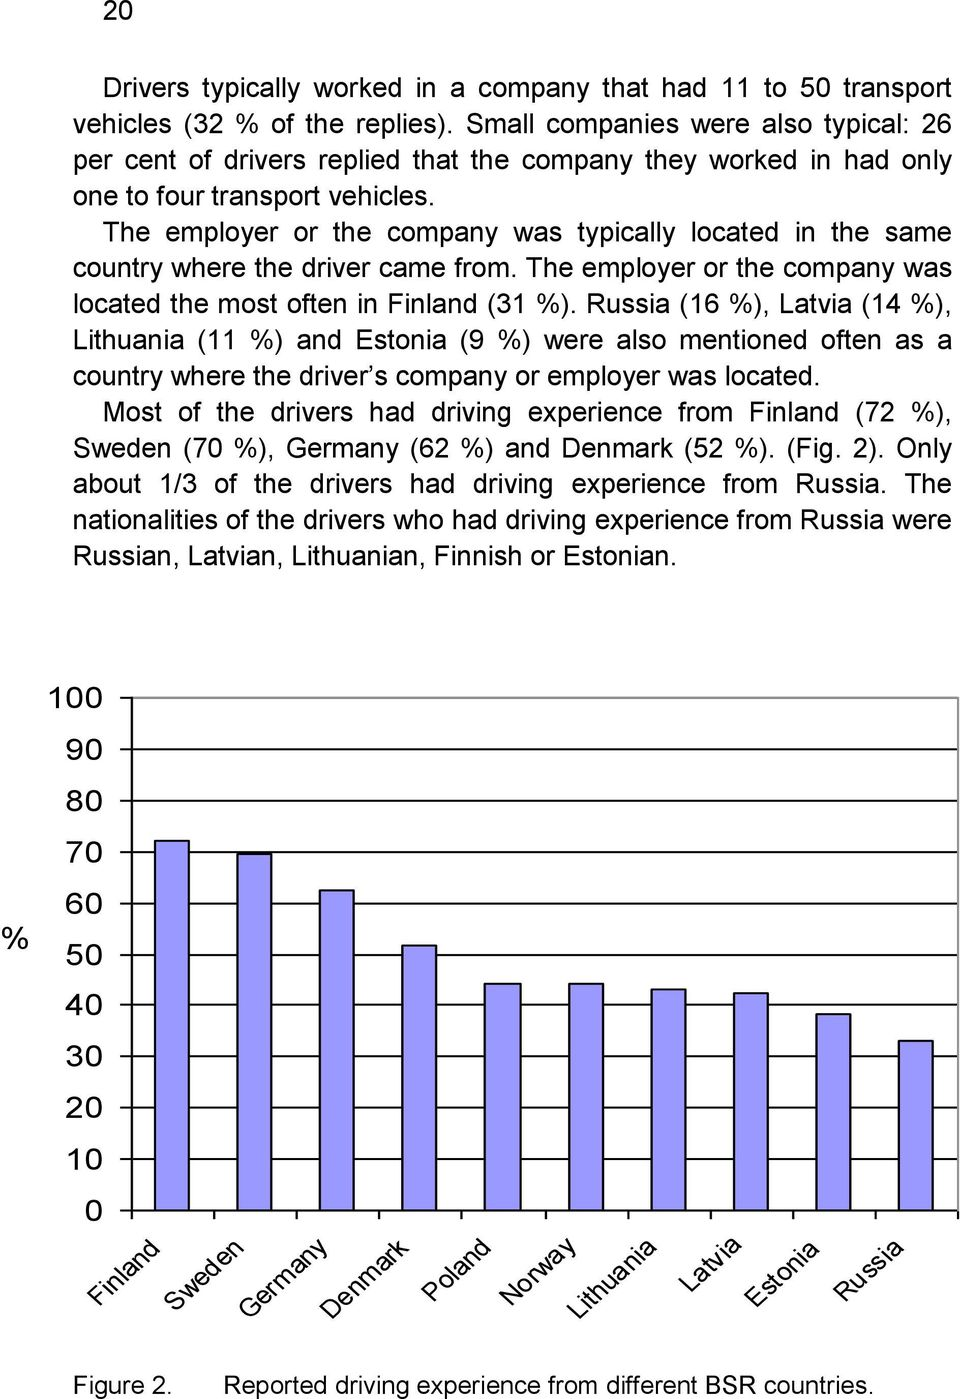 The employer or the company was typically located in the same country where the driver came from. The employer or the company was located the most often in Finland (31 %).